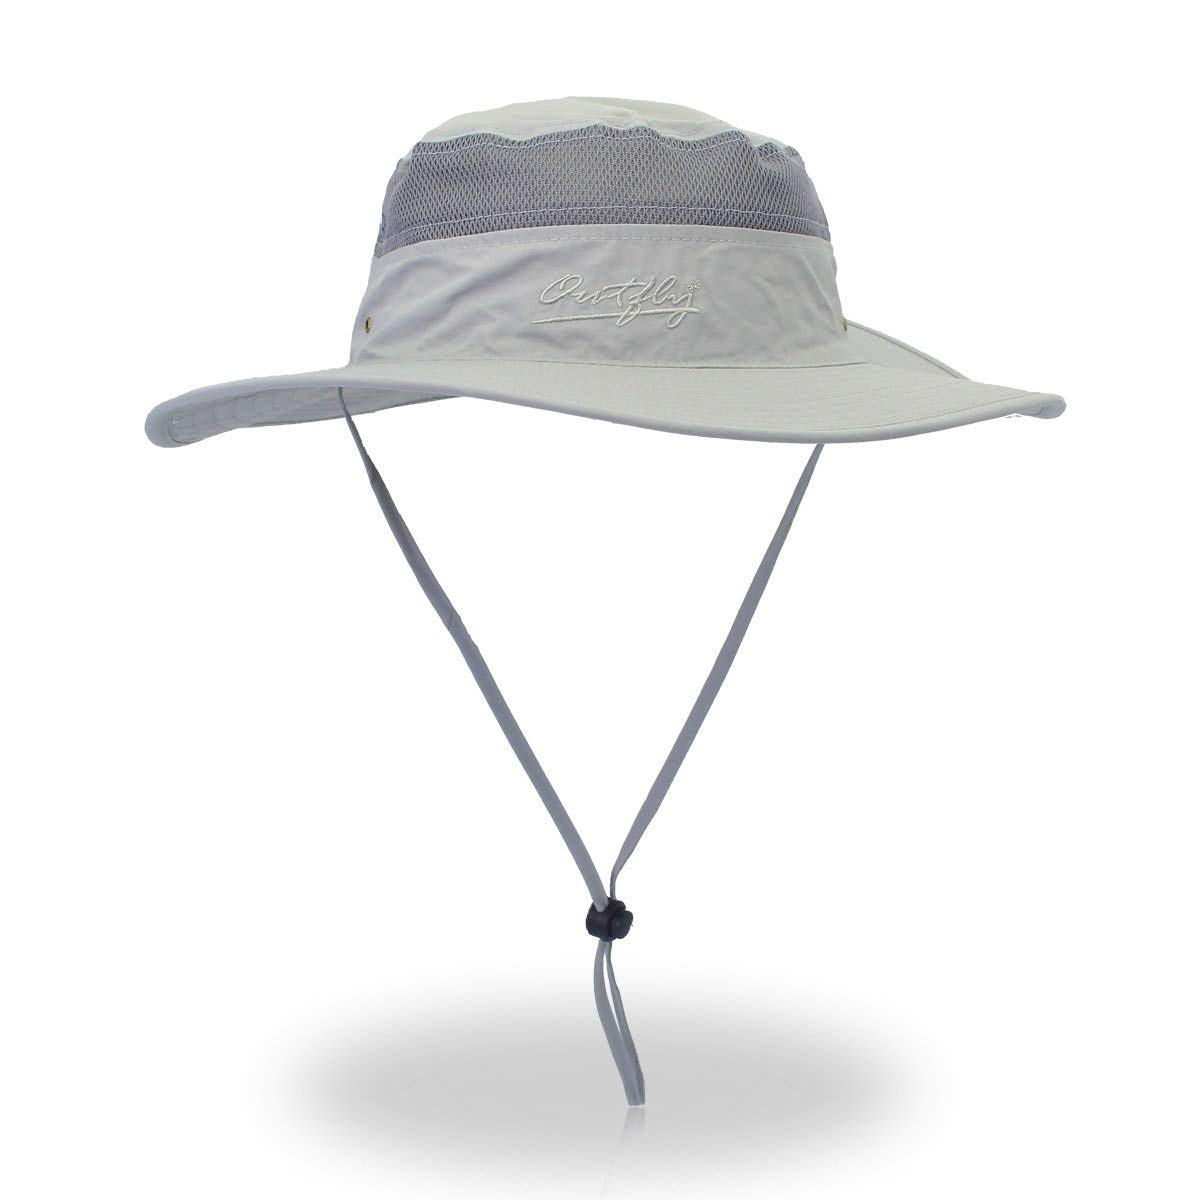 125f67753159a Get Quotations · Duakrs Unisex Wide Brim Sun Hat